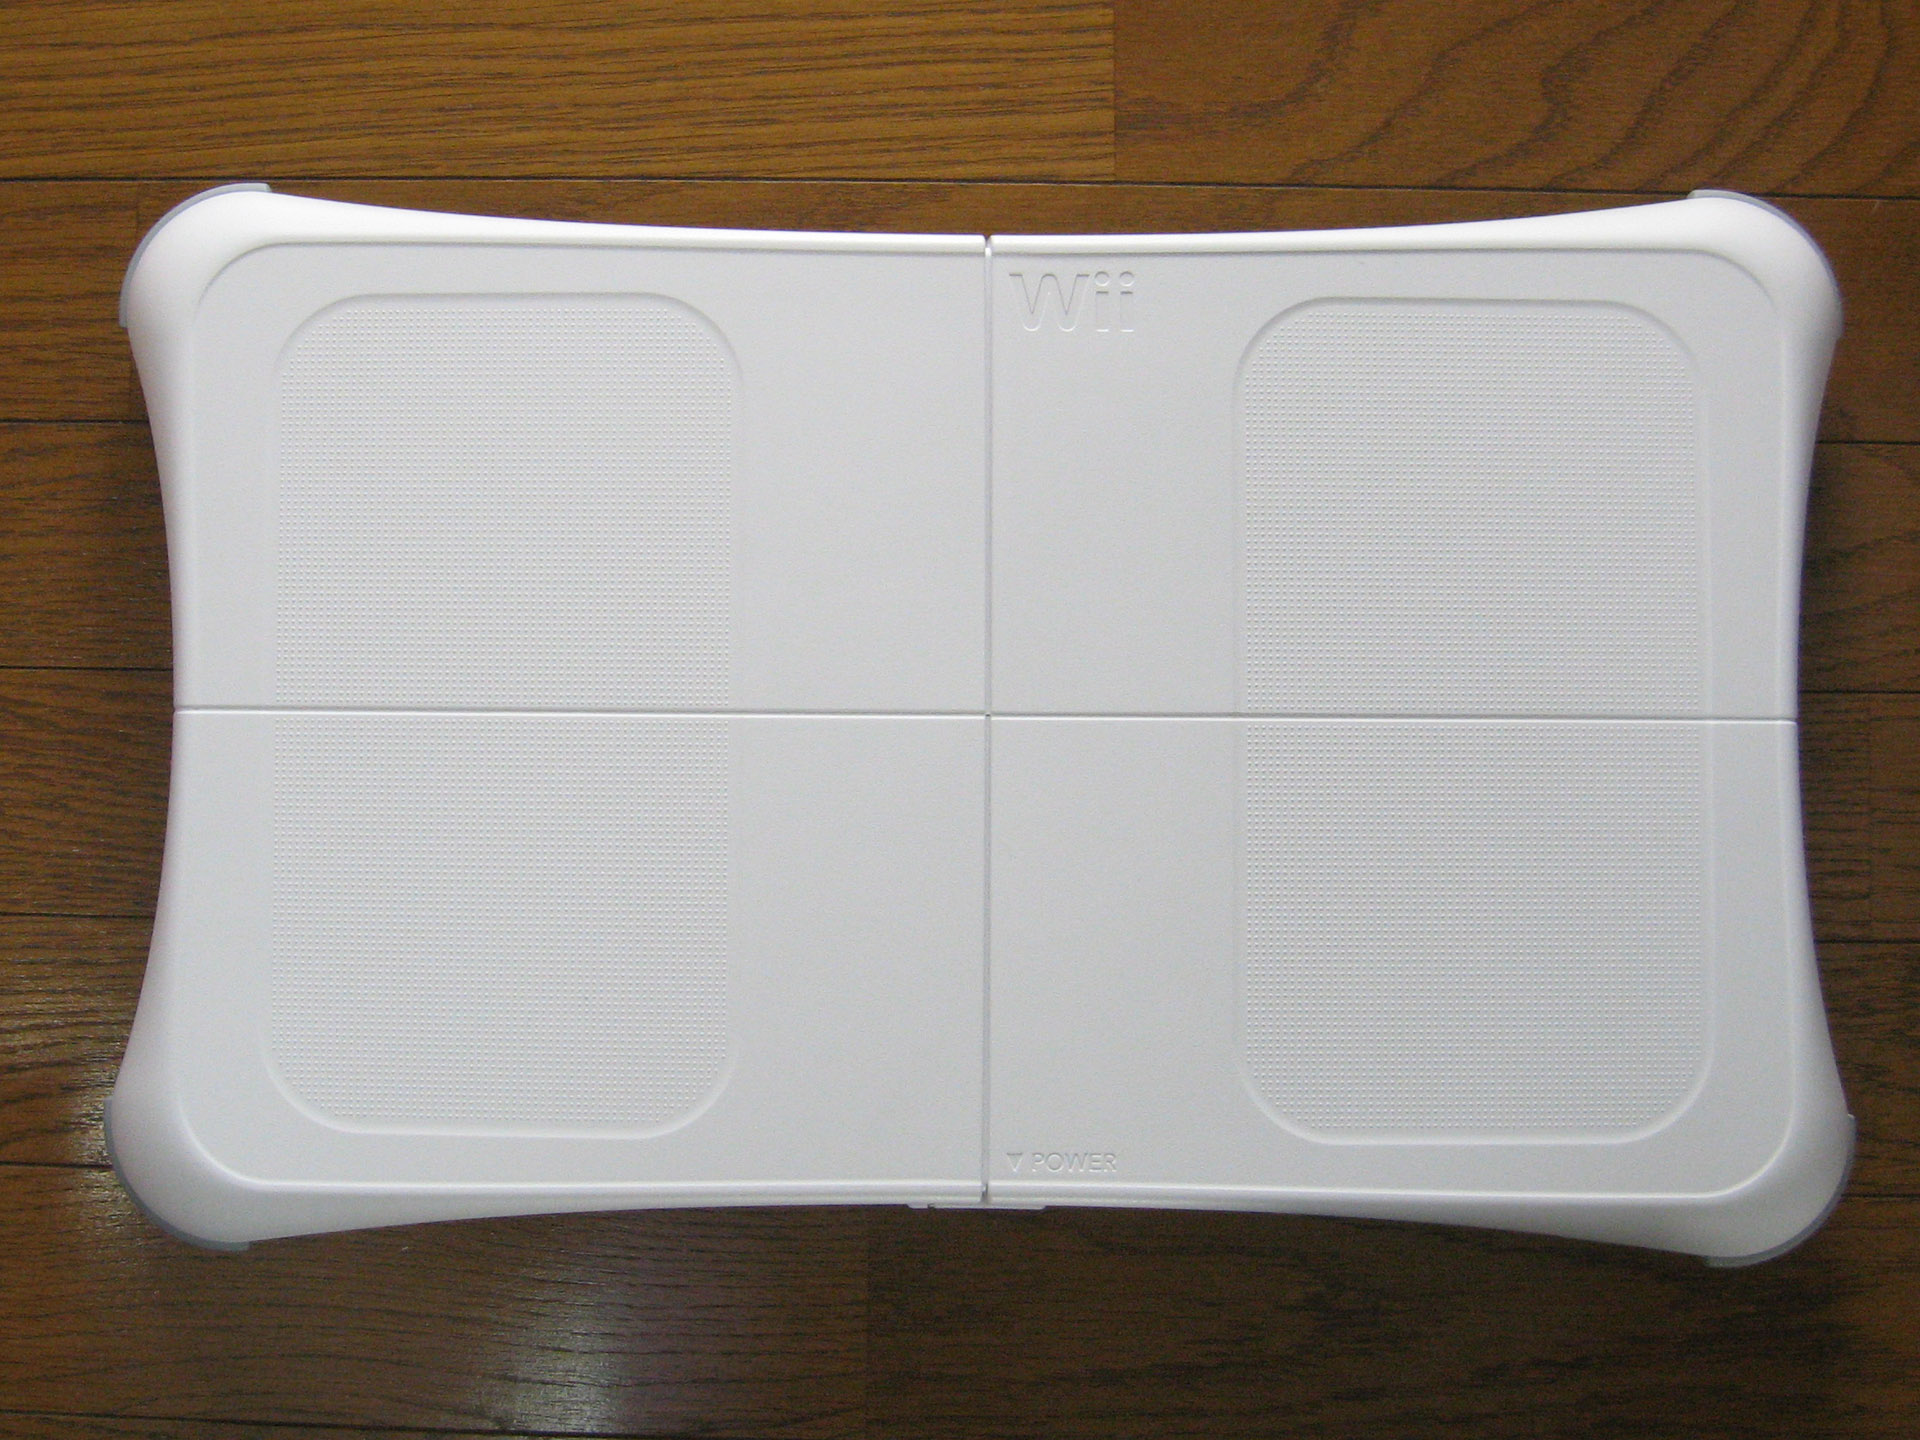 List of games that support Wii Balance Board - Wikipedia